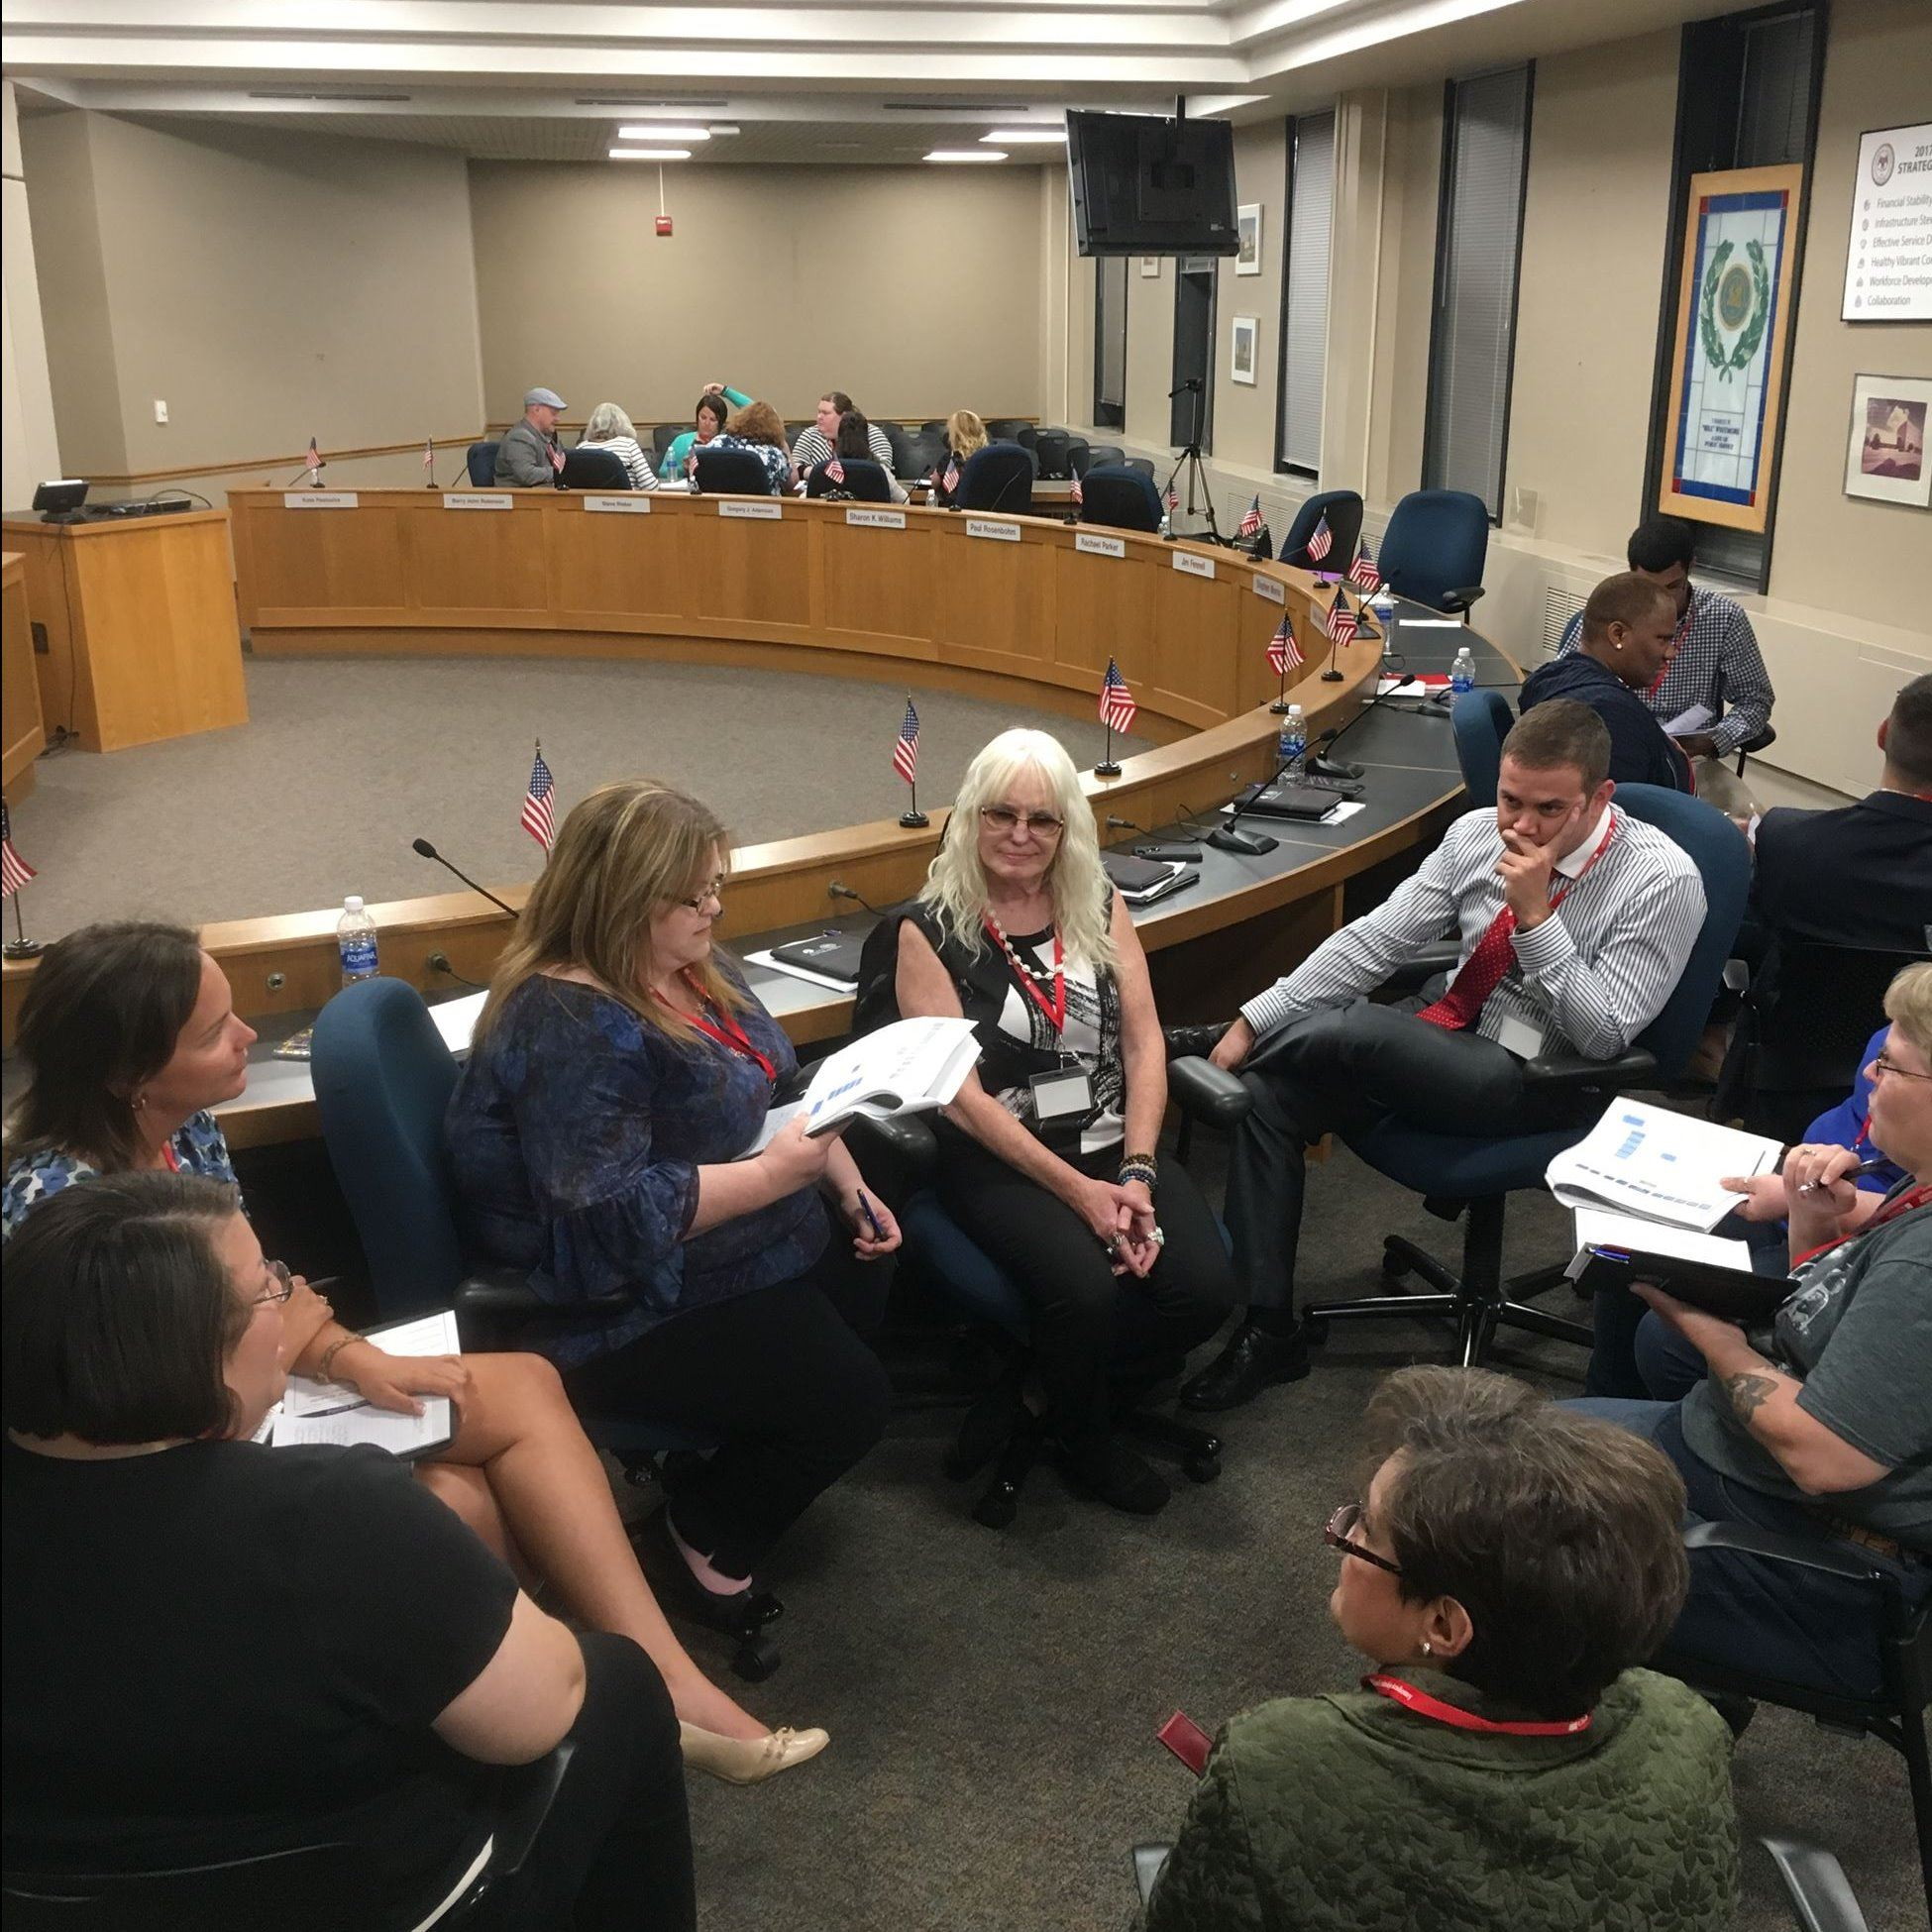 Citiznes Leadership Academy participants discussing in board room.